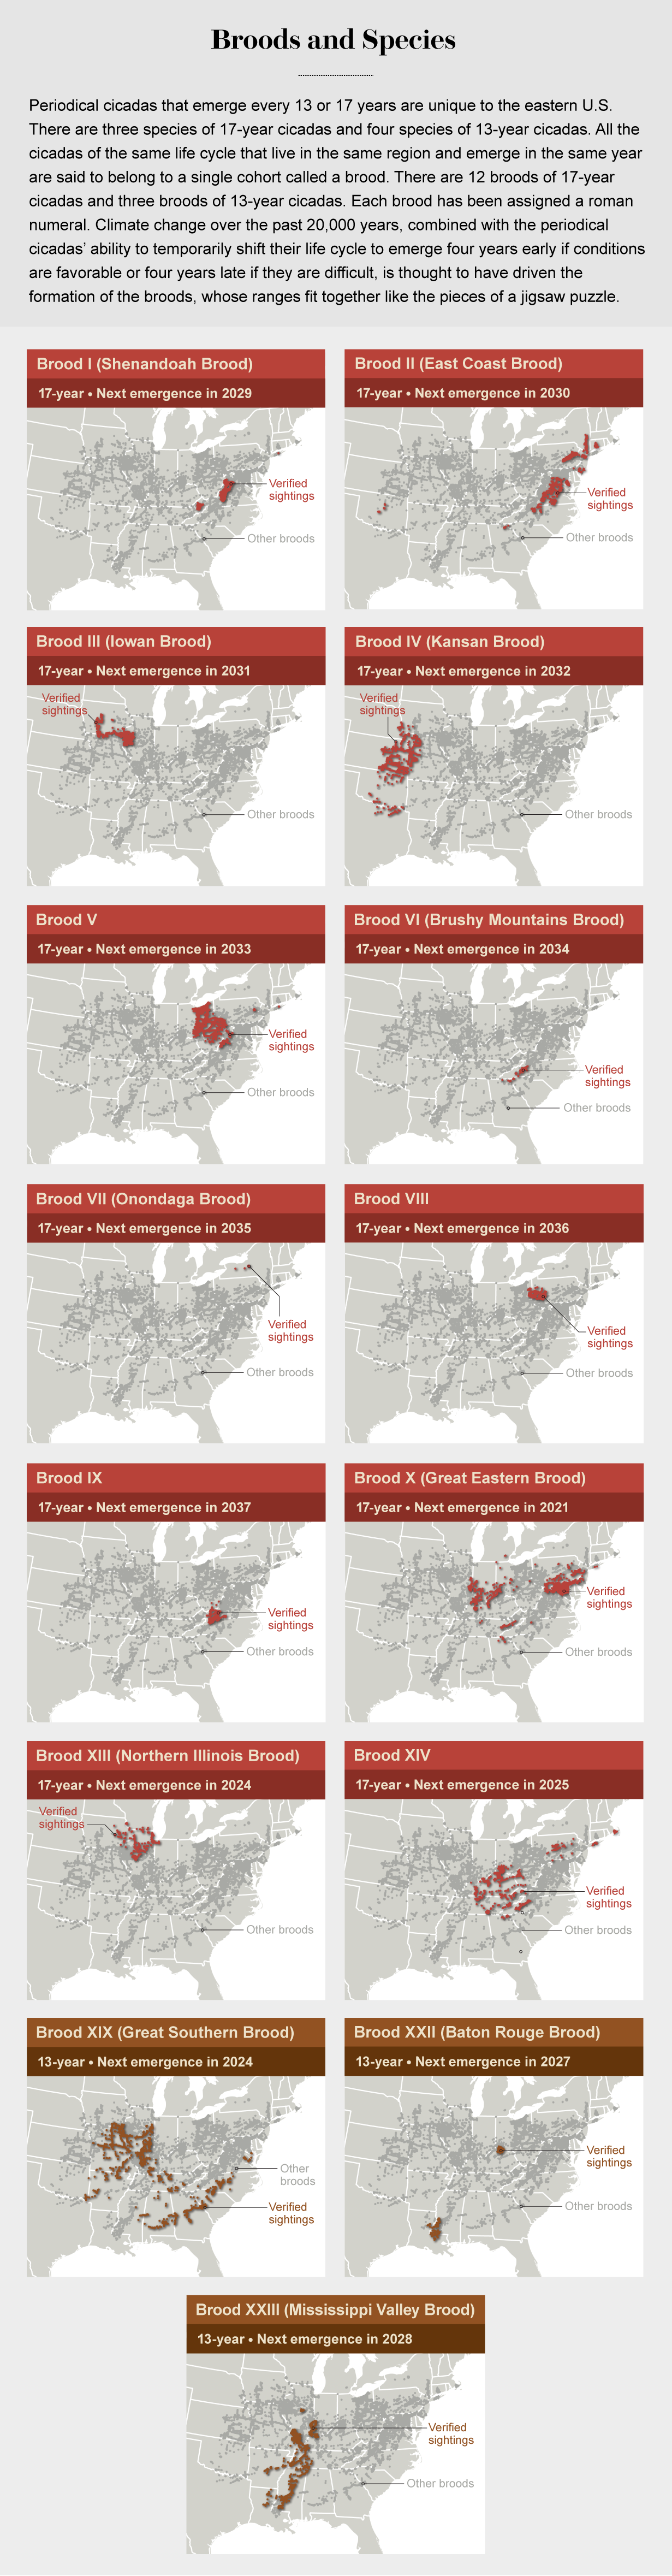 Series of maps shows the geographical ranges of 12 17-year broods and three 13-year broods of cicadas in the U.S.